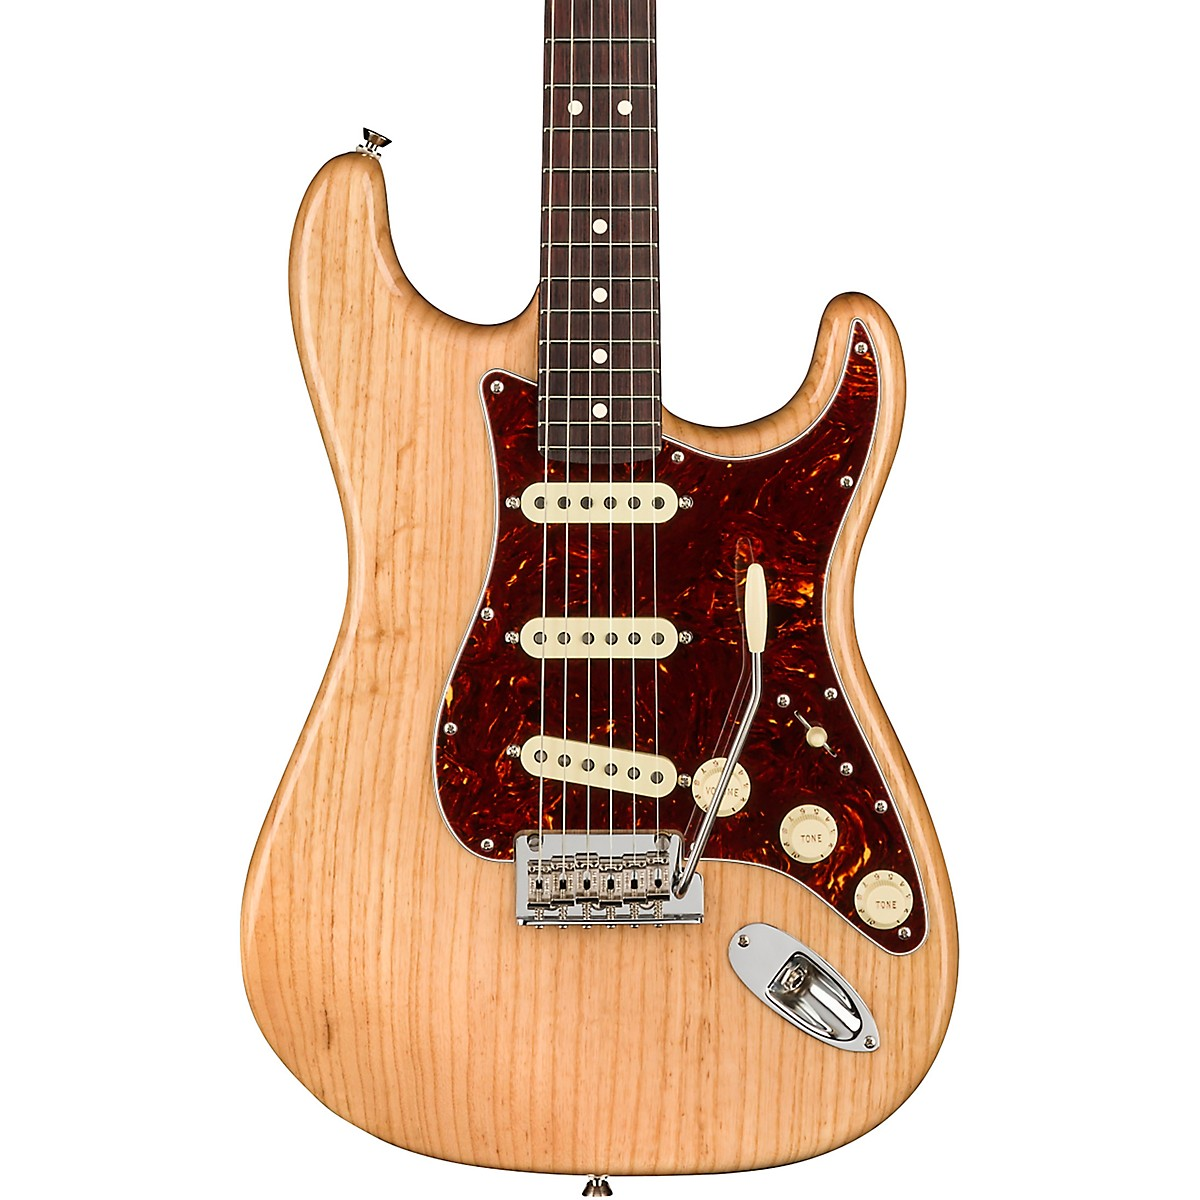 Fender American Professional Ash Stratocaster Rosewood Neck Limited-Edition Electric Guitar